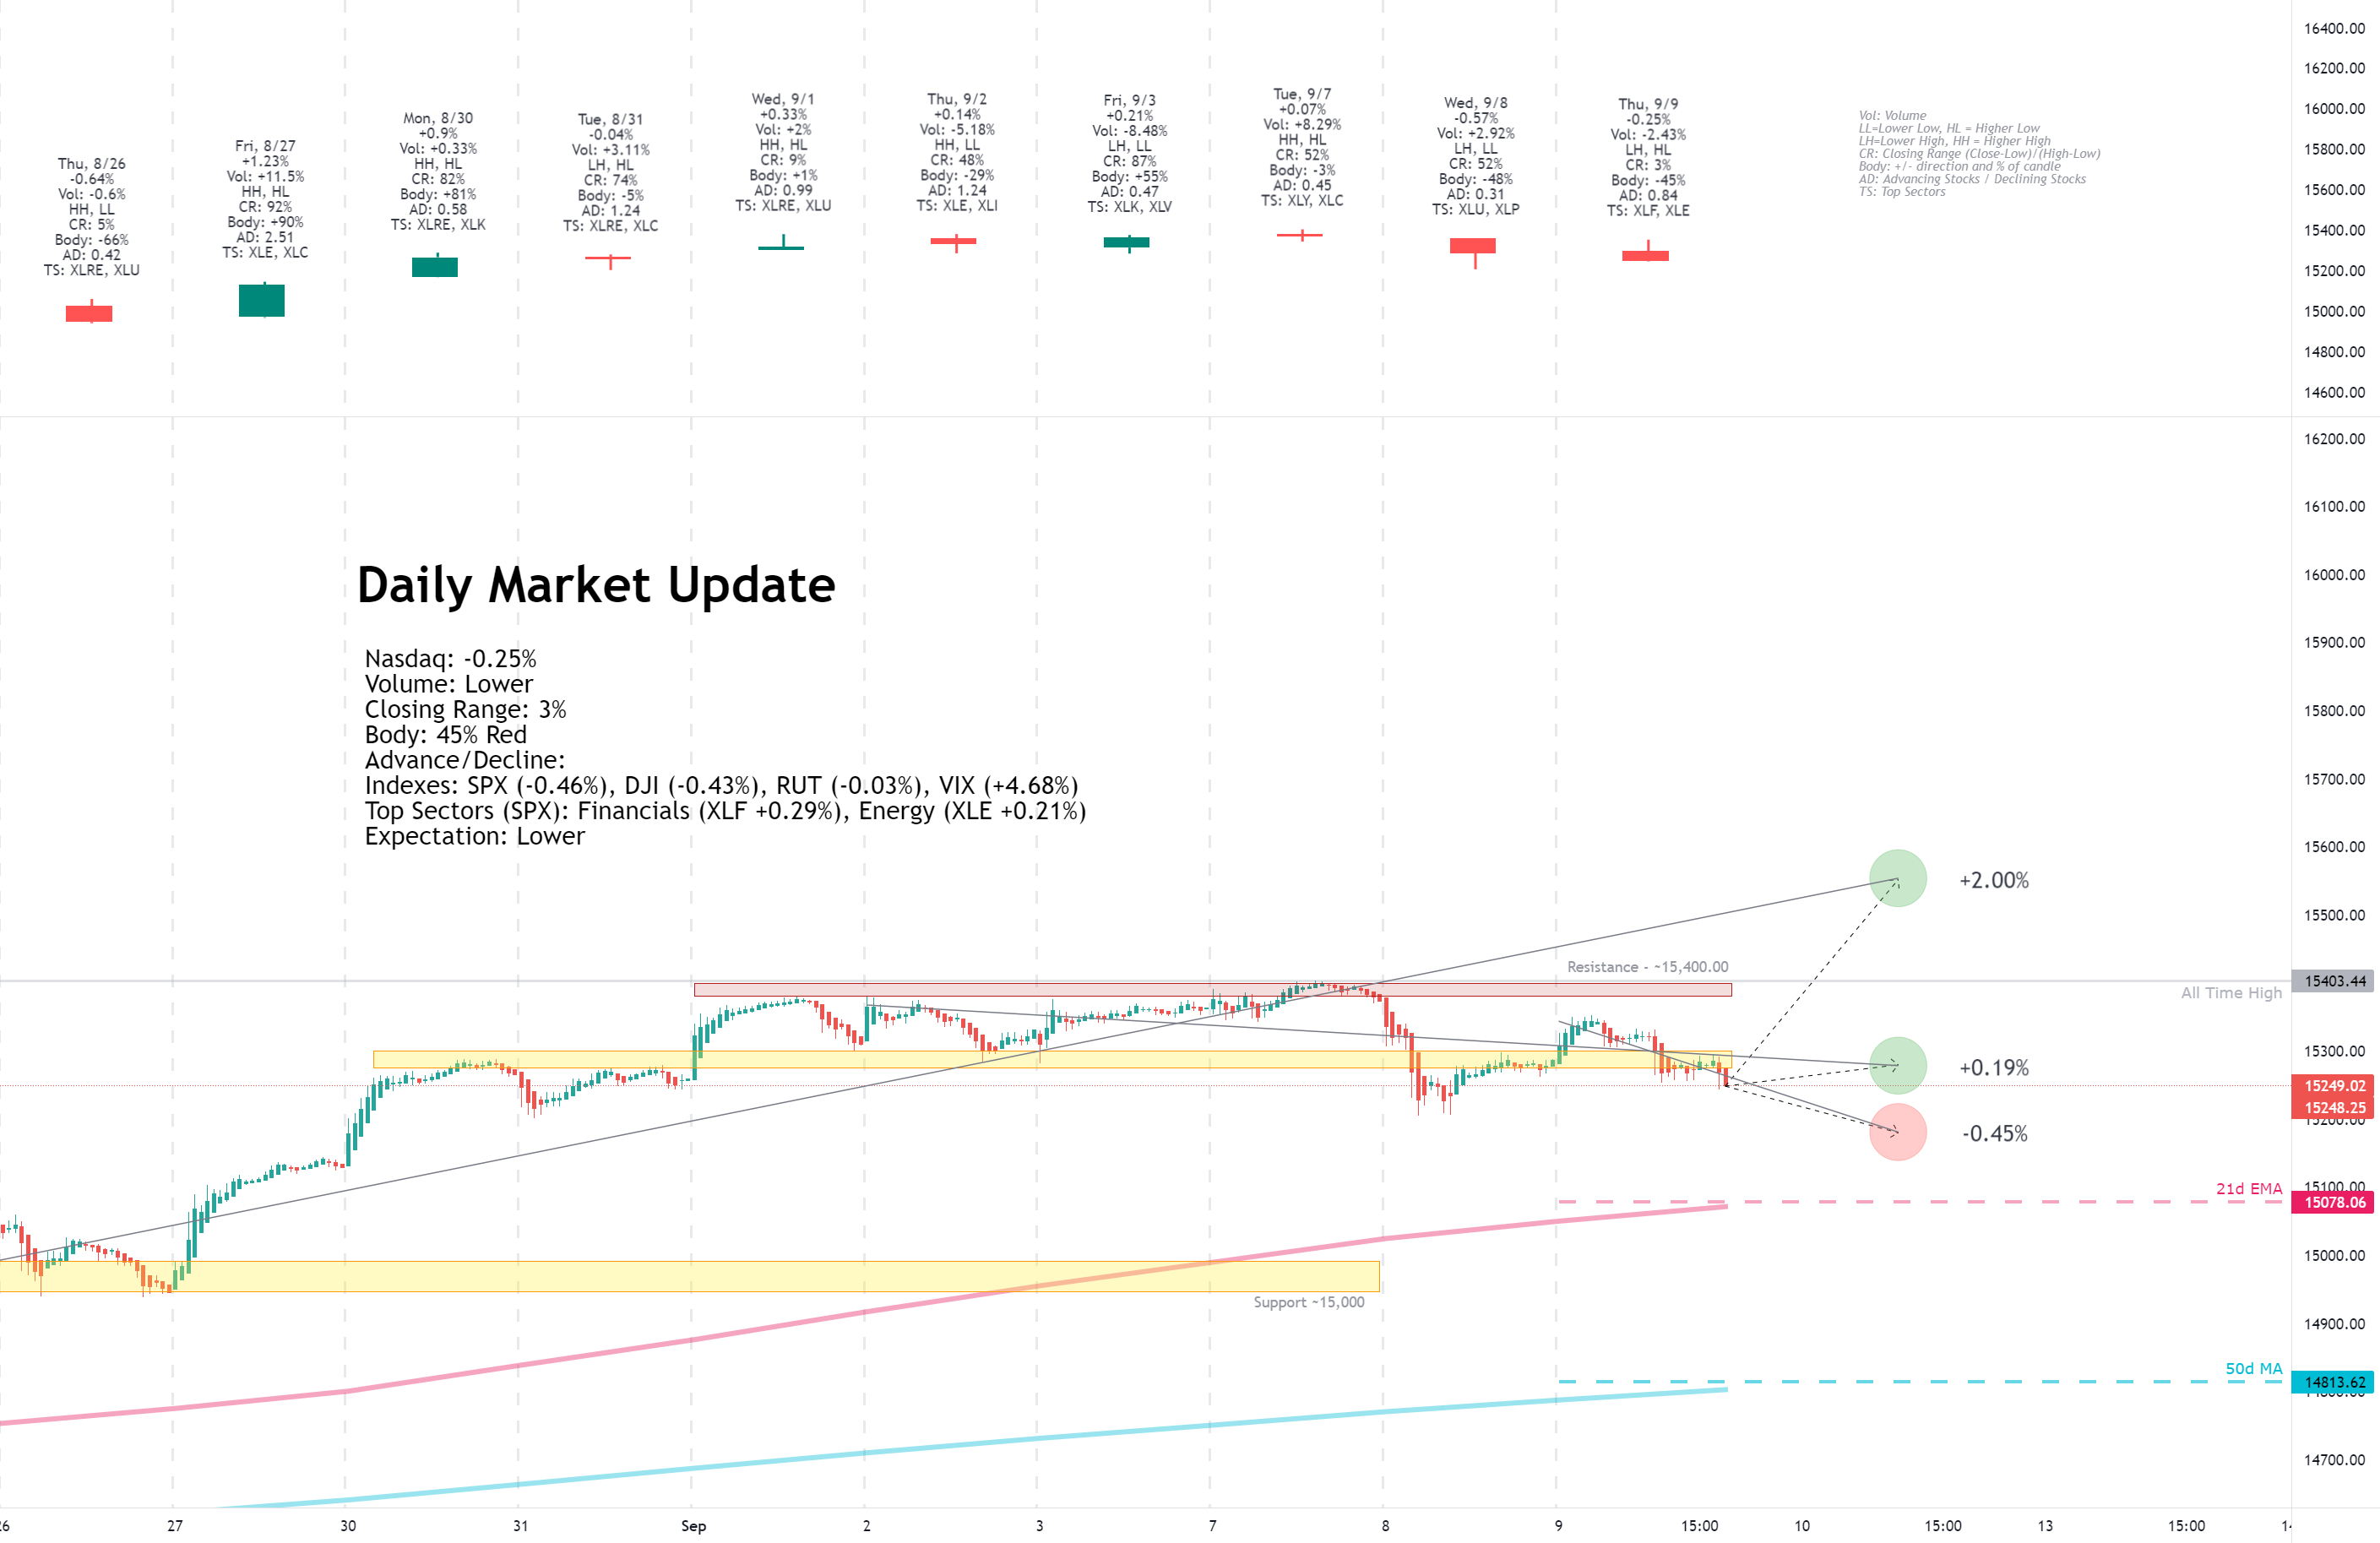 Daily Market Update for 9/9